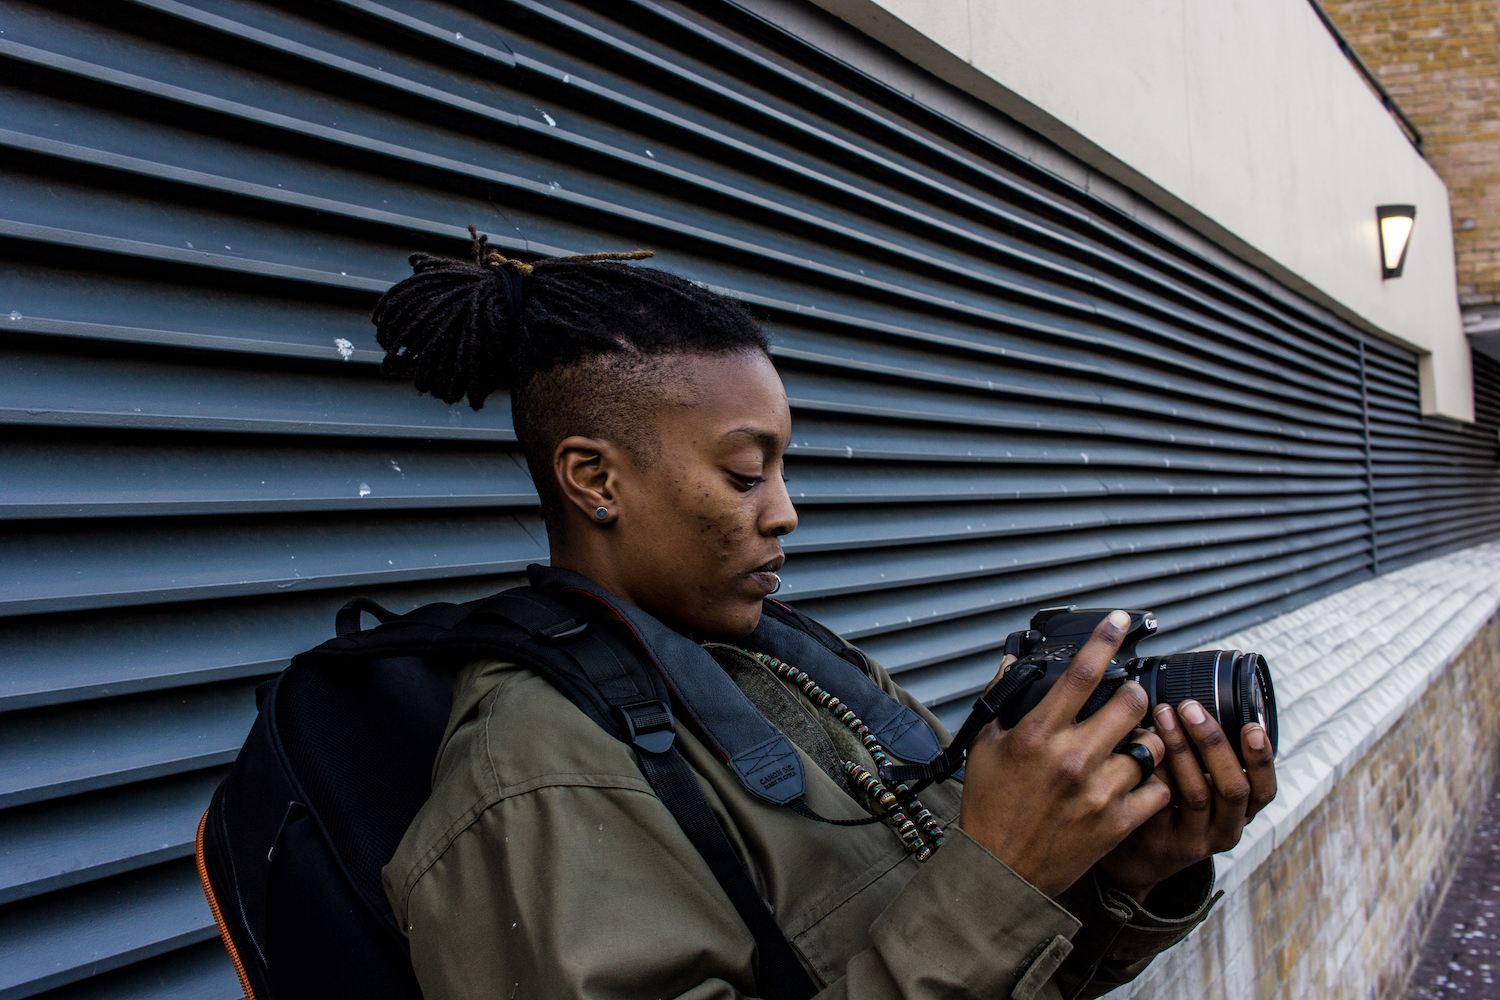 Professional Photography Black Woman With Lip Ring Khaki Jacket Black Backpack And Dreadlocks Leaning Against Wall With Vents Filming With Camera In Limehouse Basin